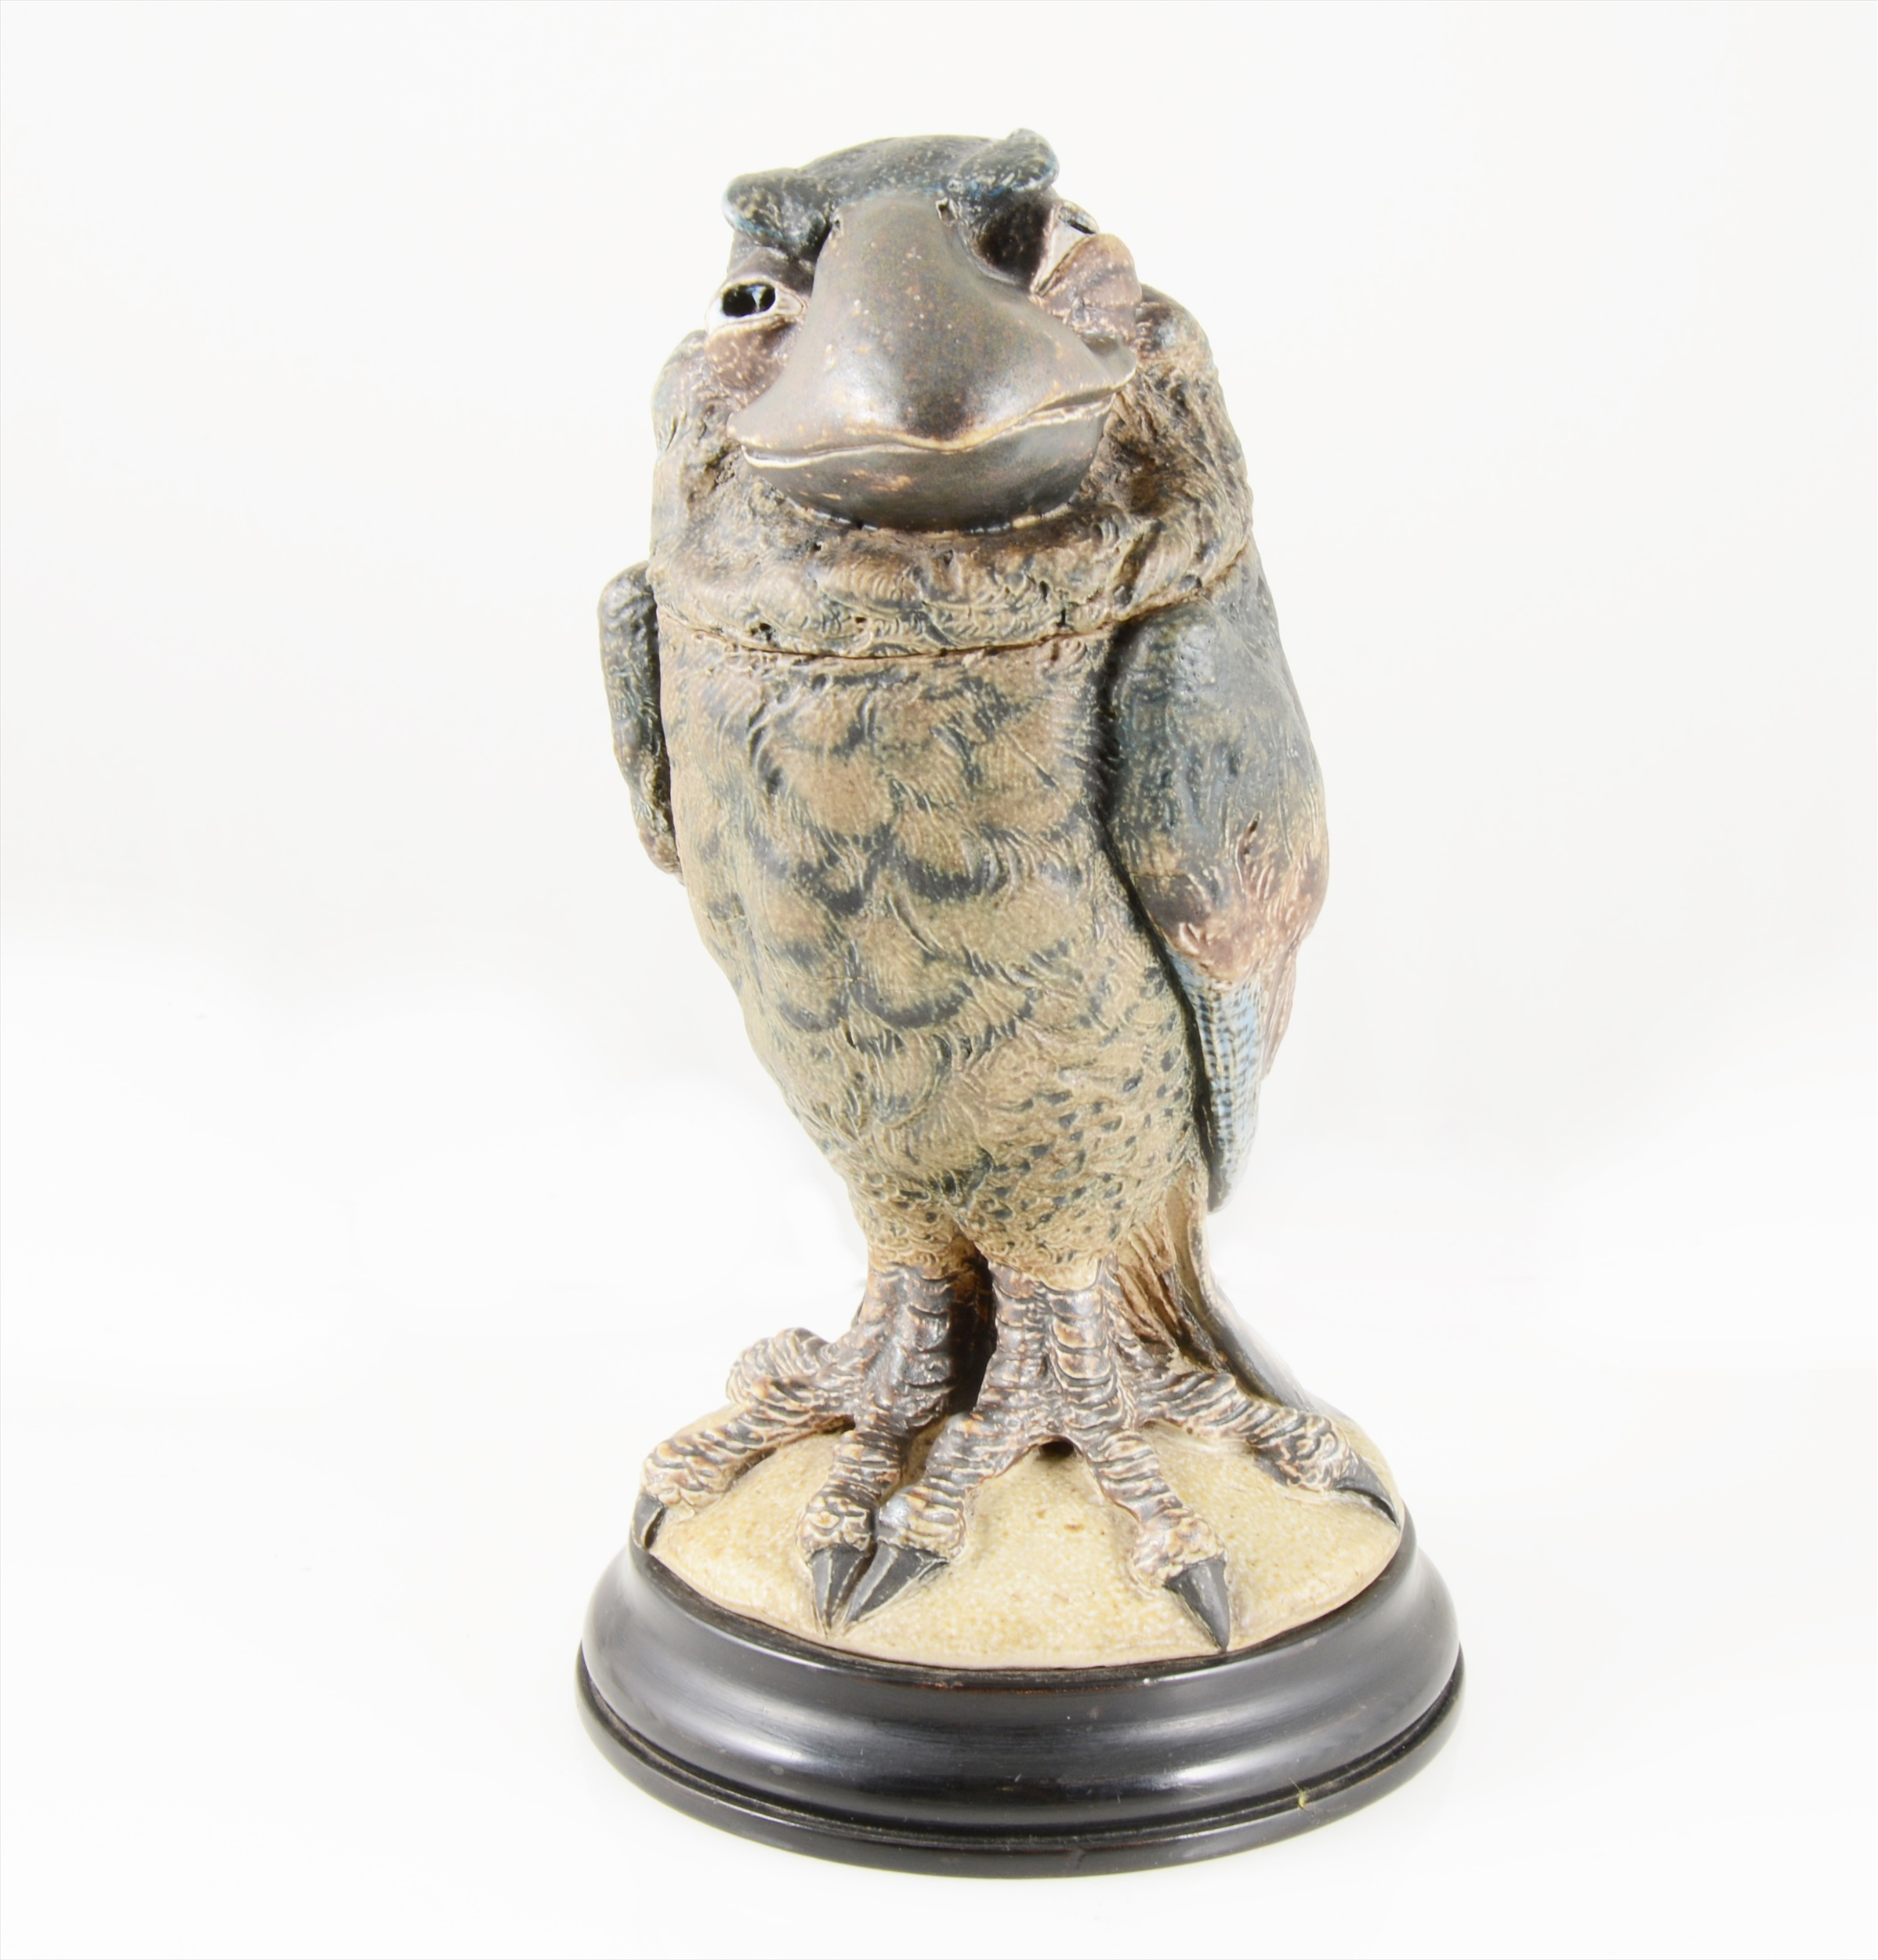 Martin Brothers Pottery, Wally Bird tobacco jar